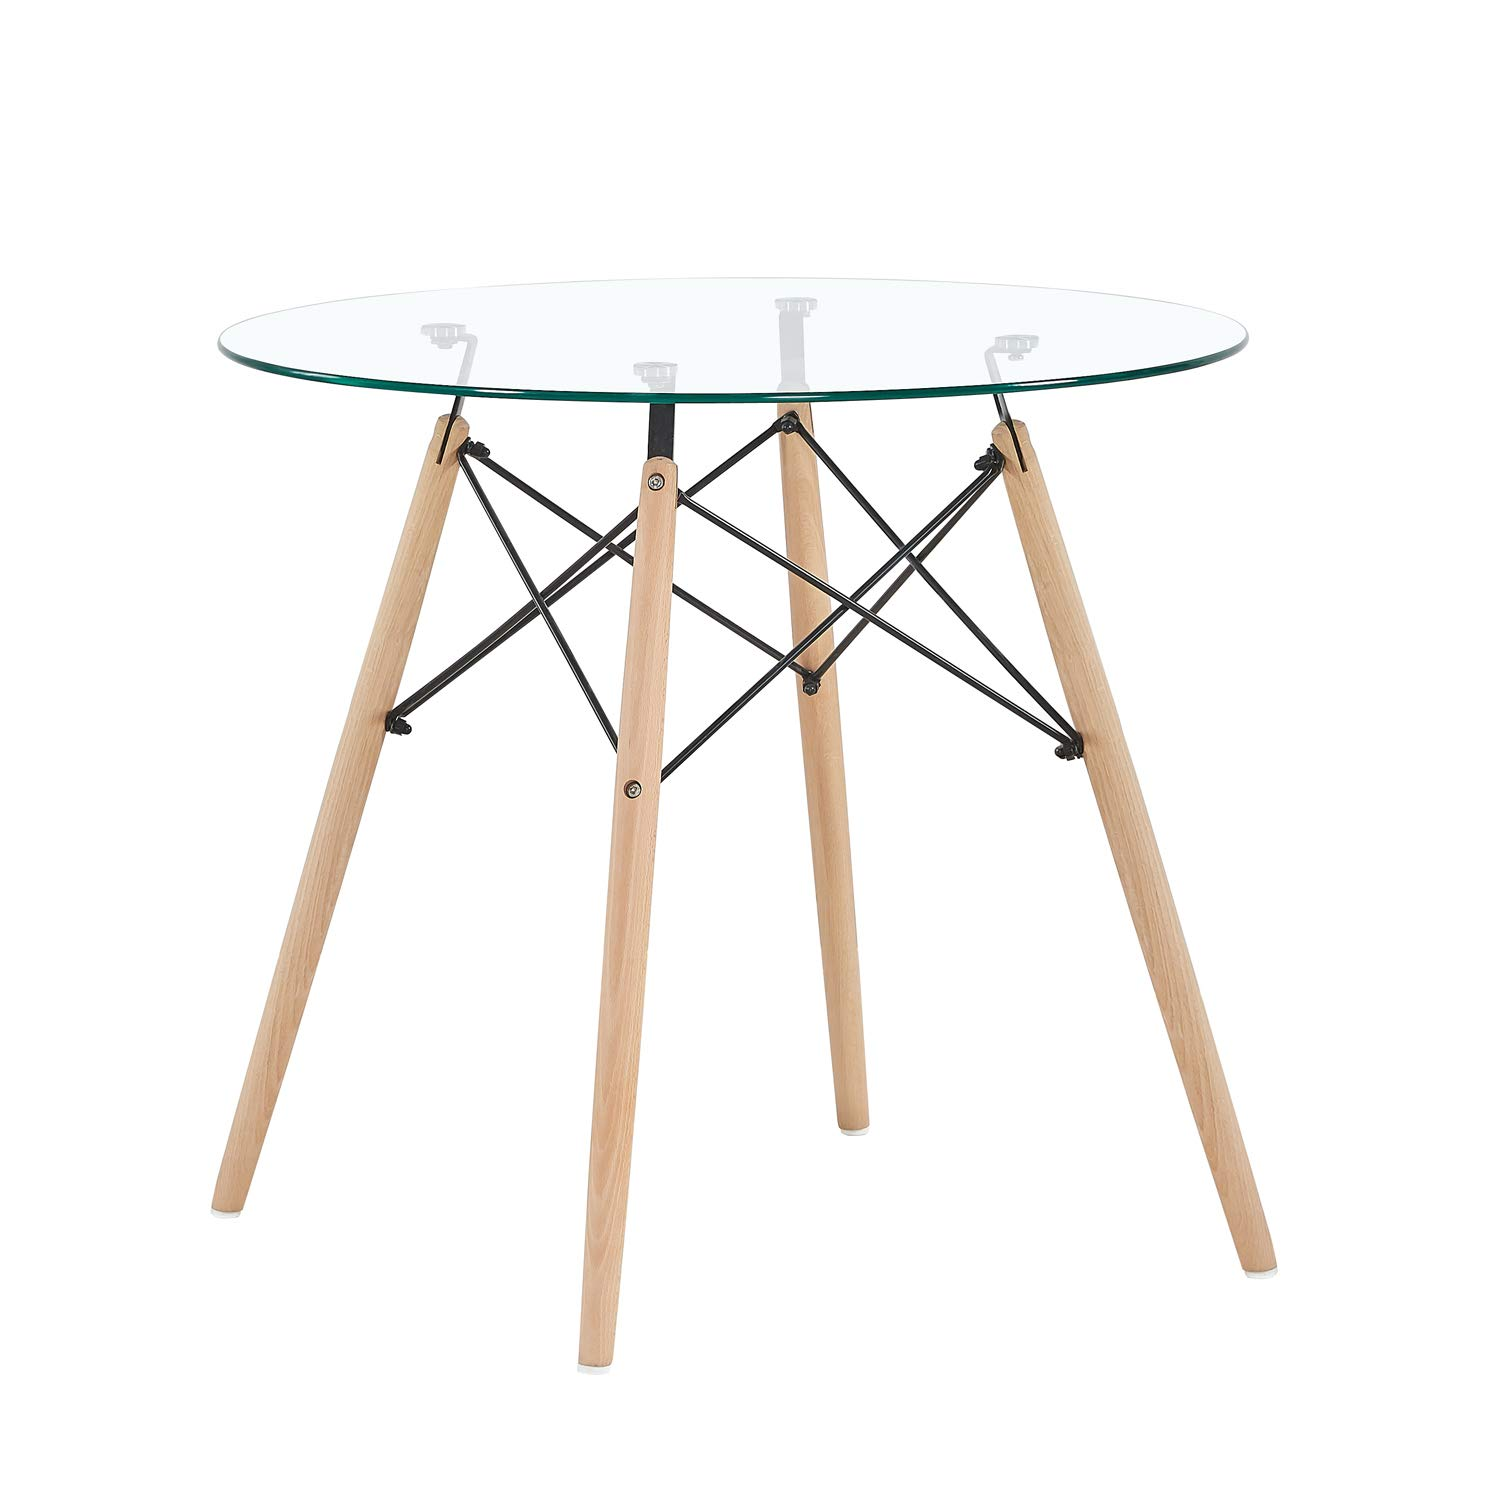 Mcombo Dining Table Round Glass Table Coffee Table for Kitchen Dining Room